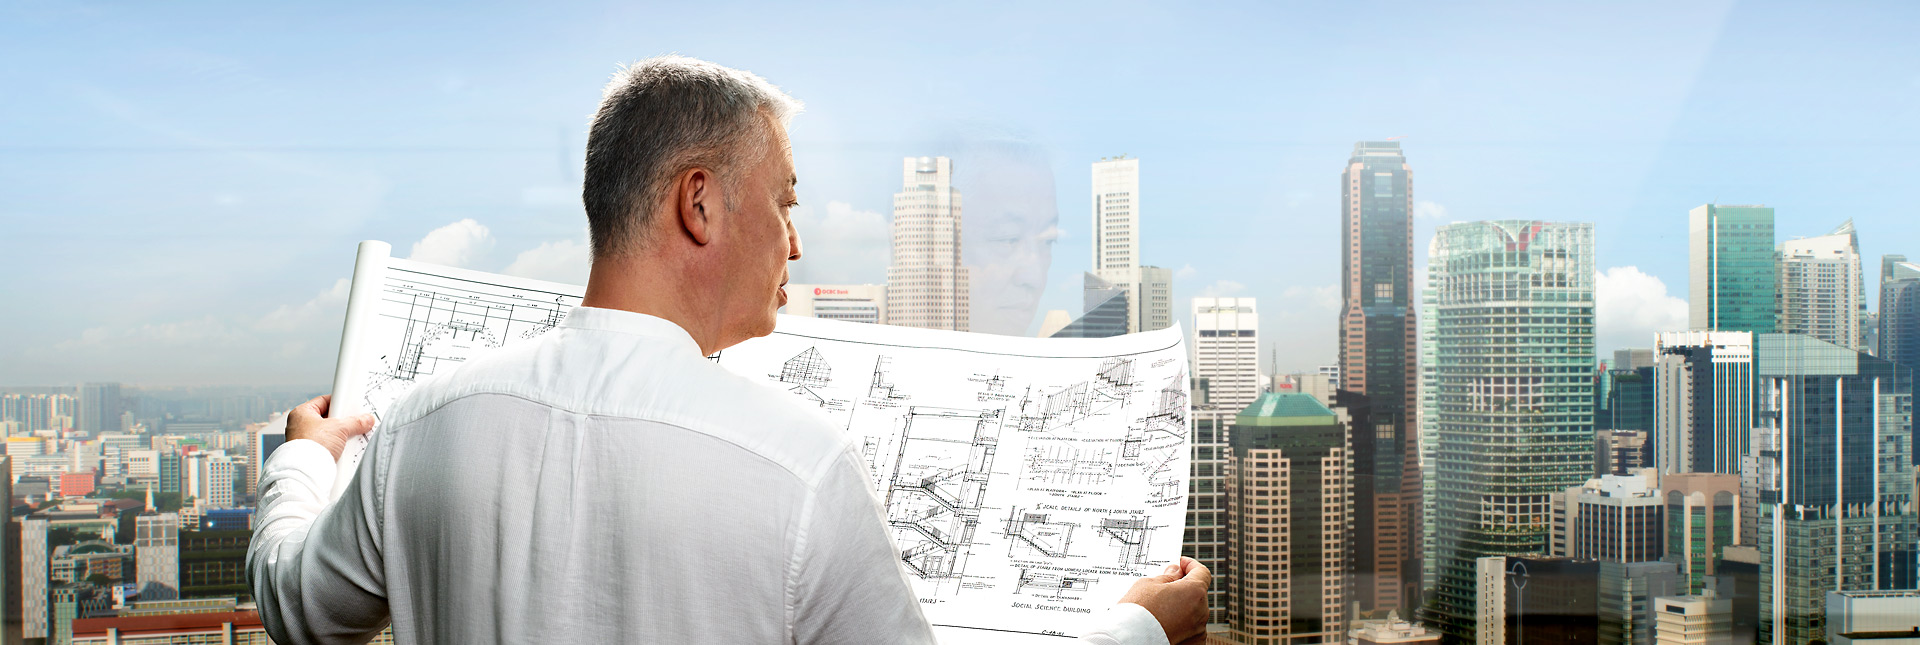 Man looking at blueprints by window